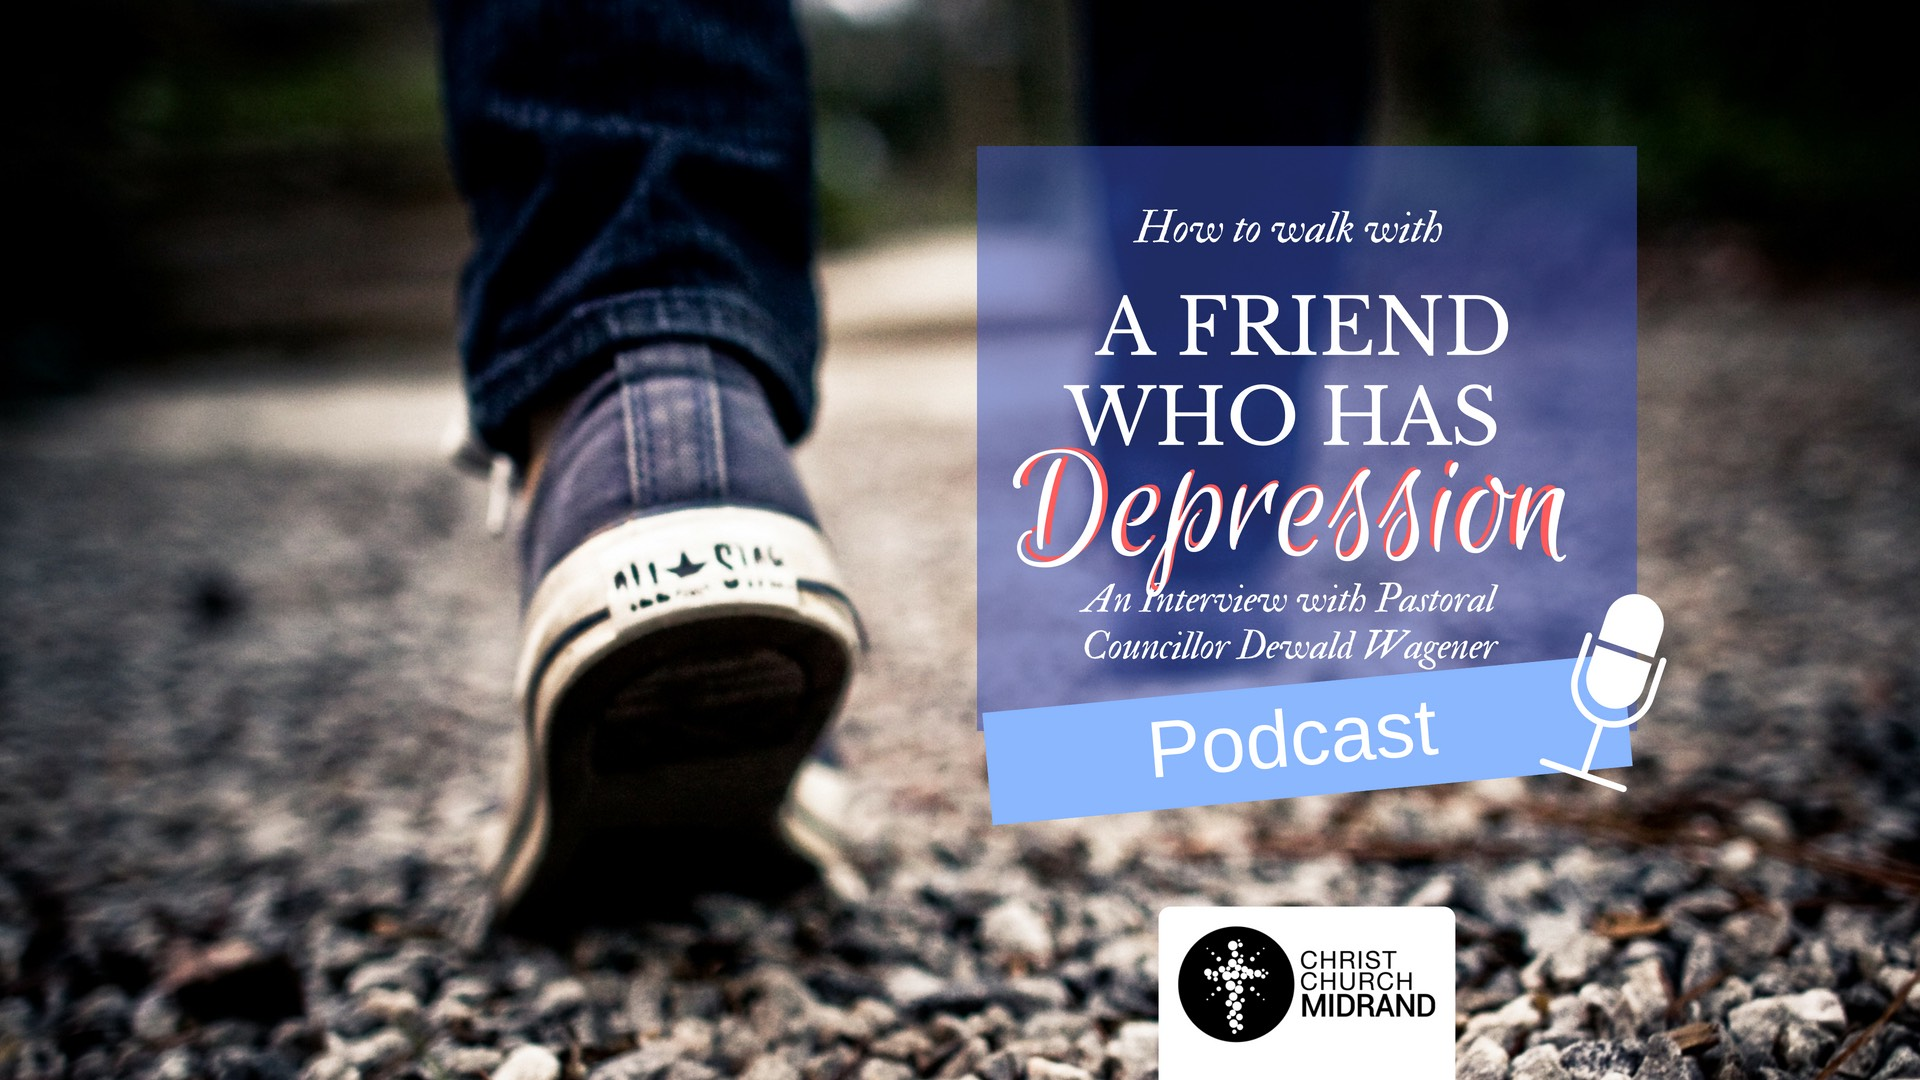 How to Walk with a Friend who has Depression